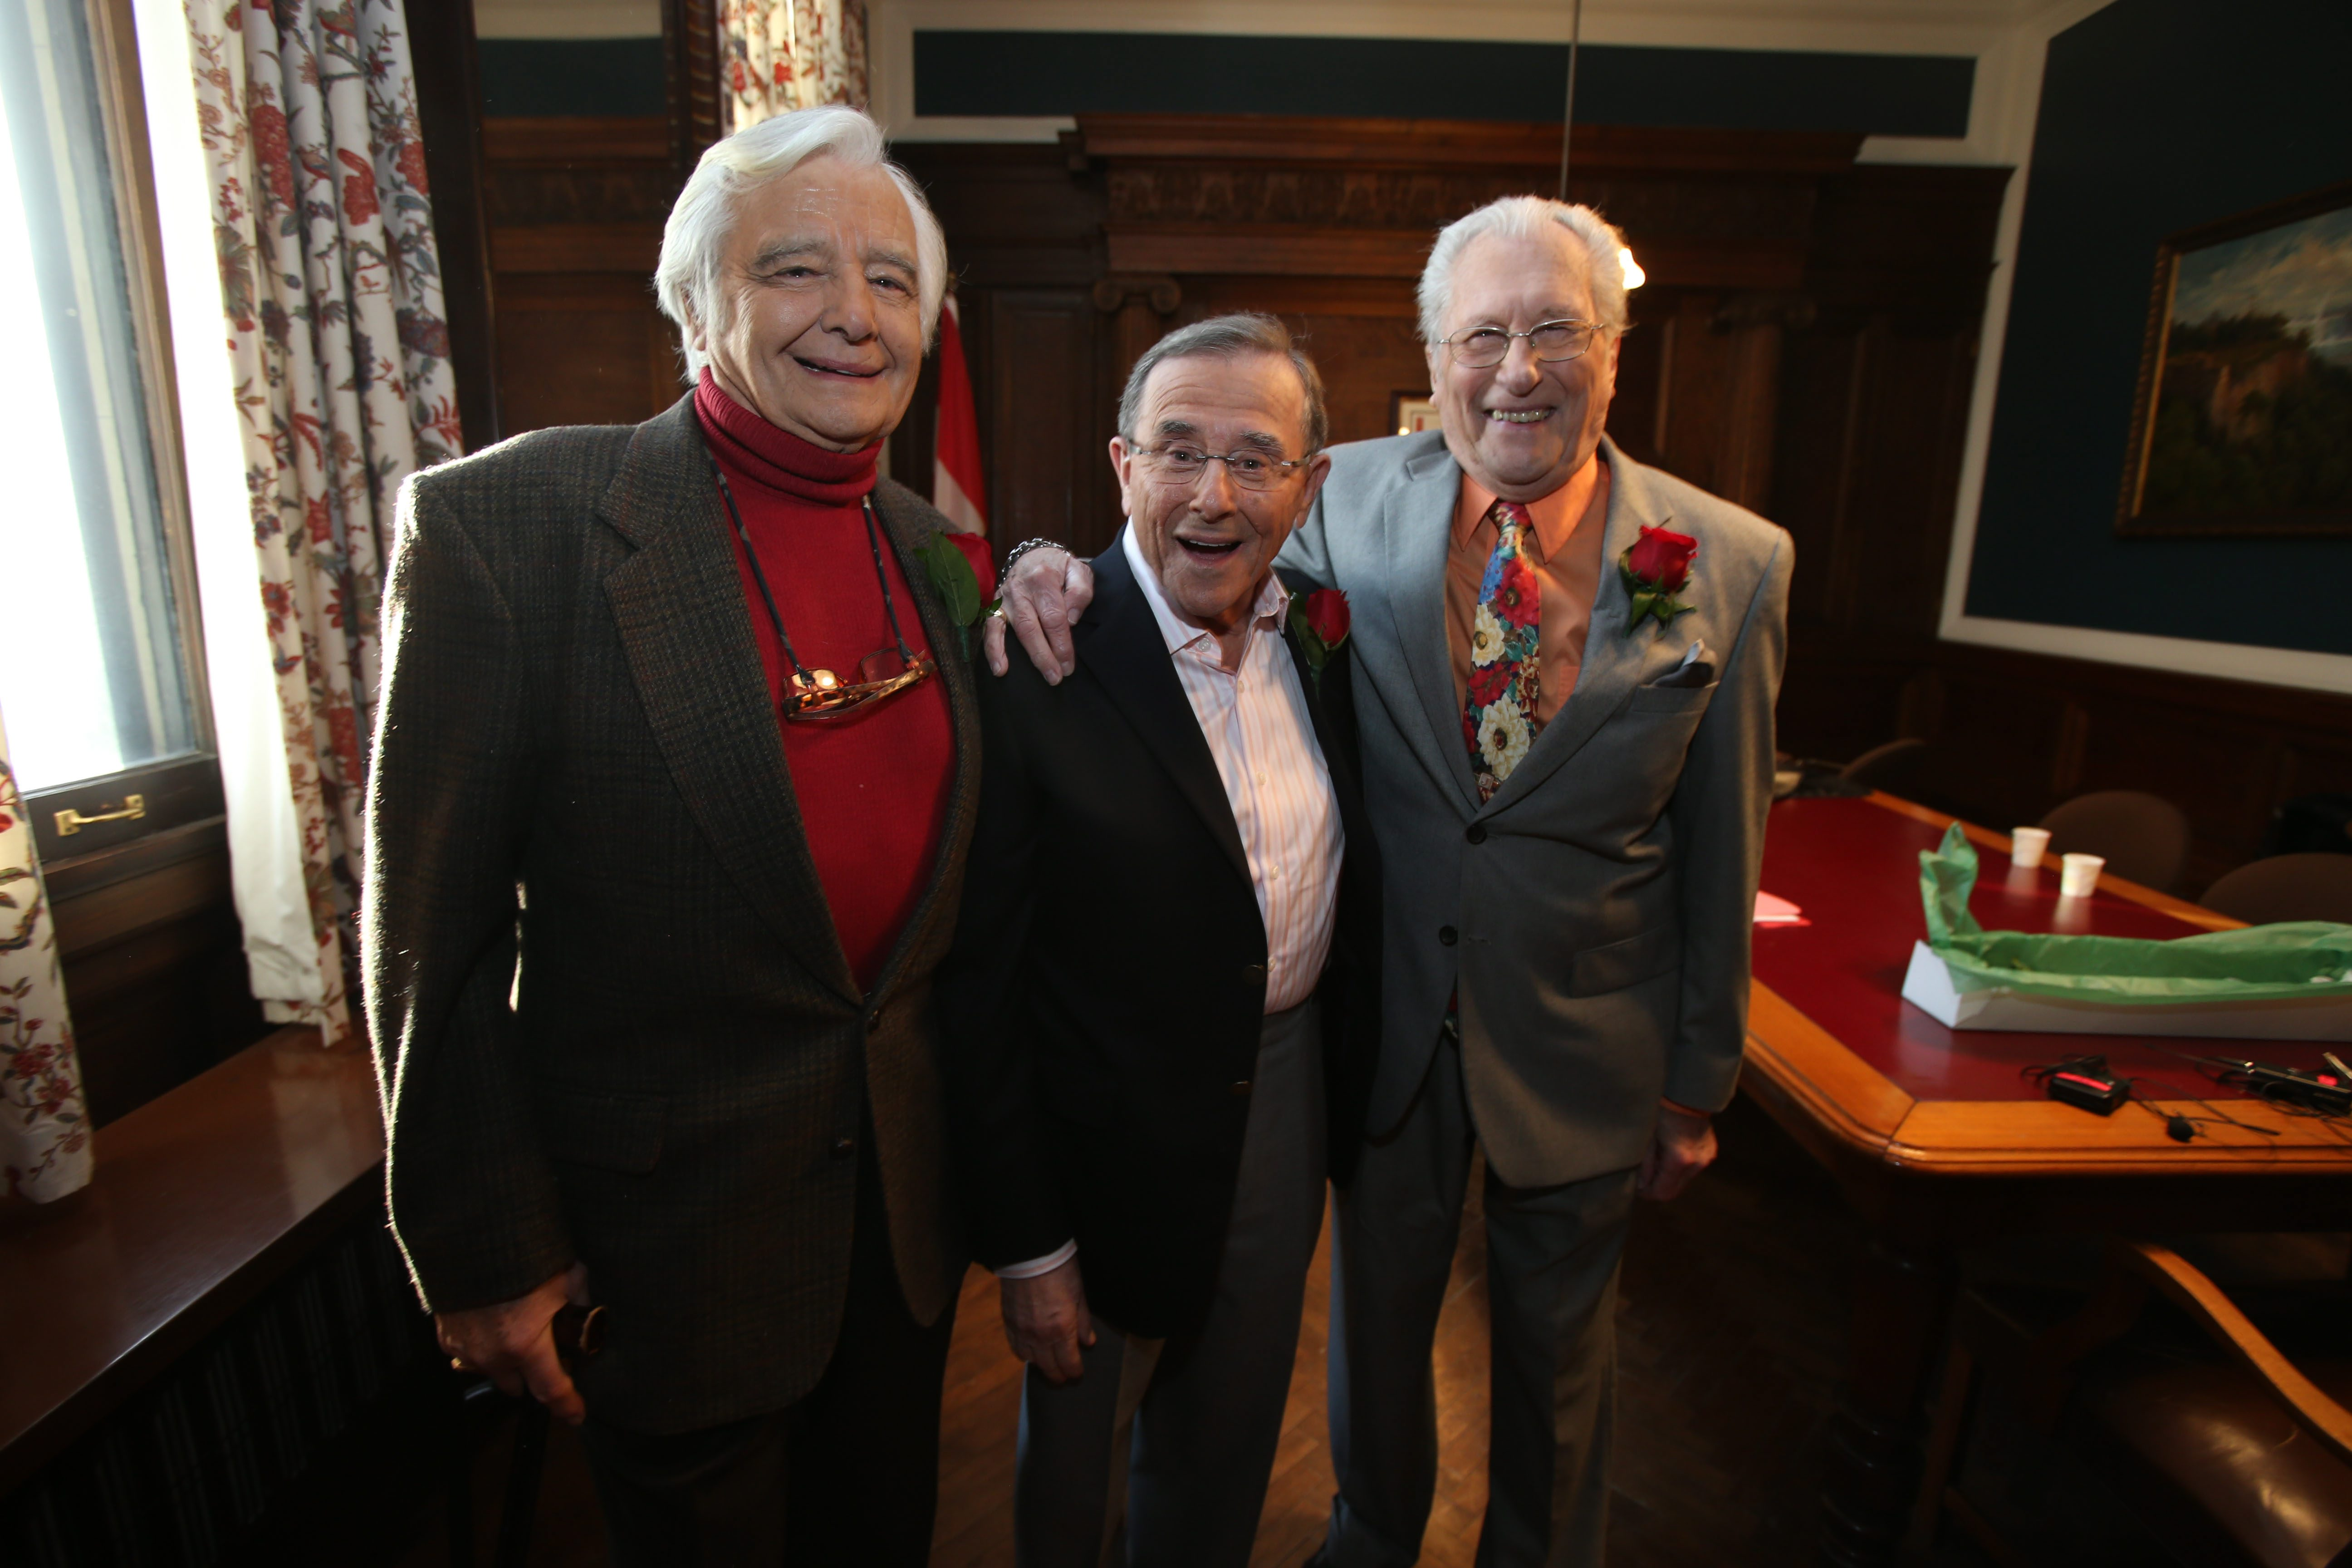 L to R: Rick Azar, Irv Weinstein and Tom Jolls, former television journalists for WKBW-TV in Buffalo, pose for a photo backstage before appearing in the Giants of Buffalo: Television program at the Buffalo History Museum, Friday, March 21, 2014. (Charles Lewis/Buffalo News)